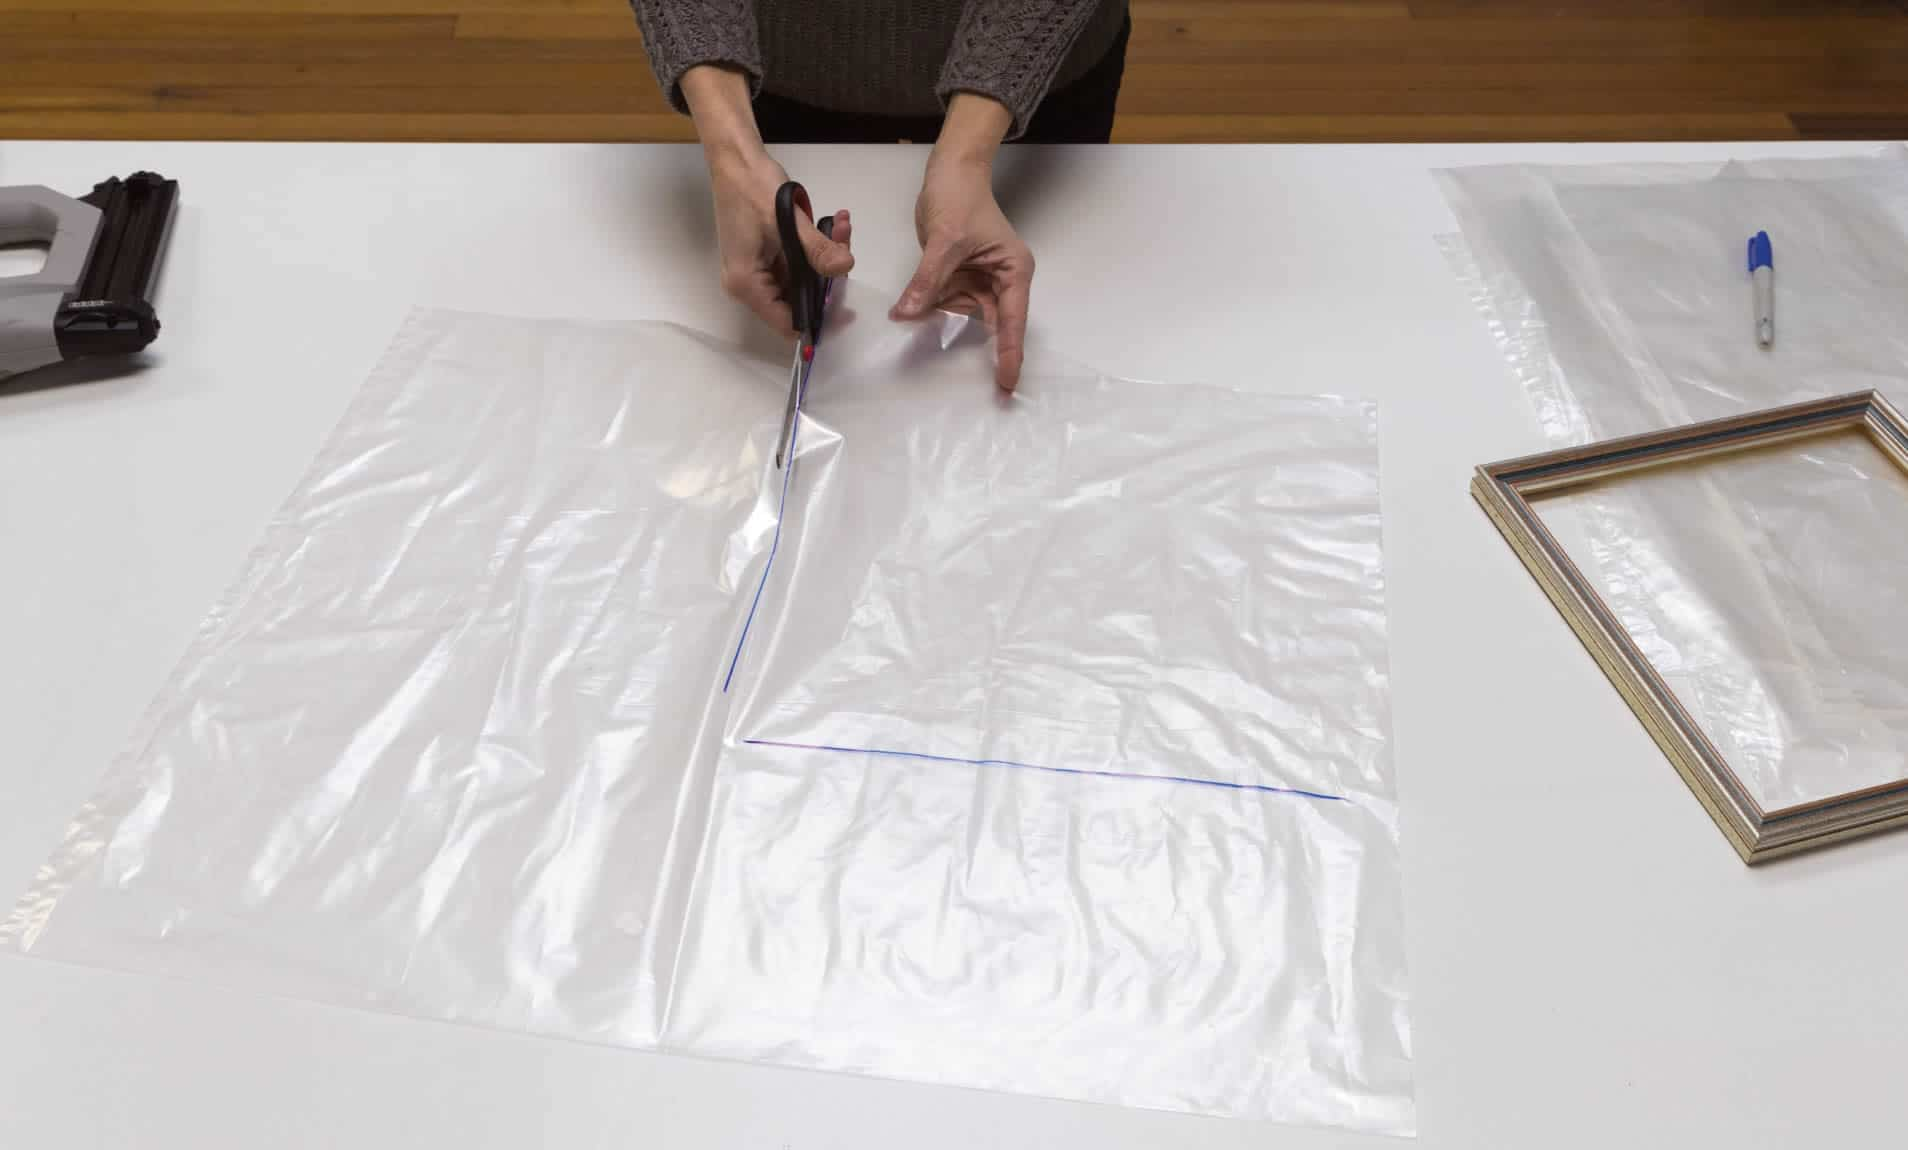 step 1a - create mini indoor greenhouse - cutting out 6 pieces of plastic